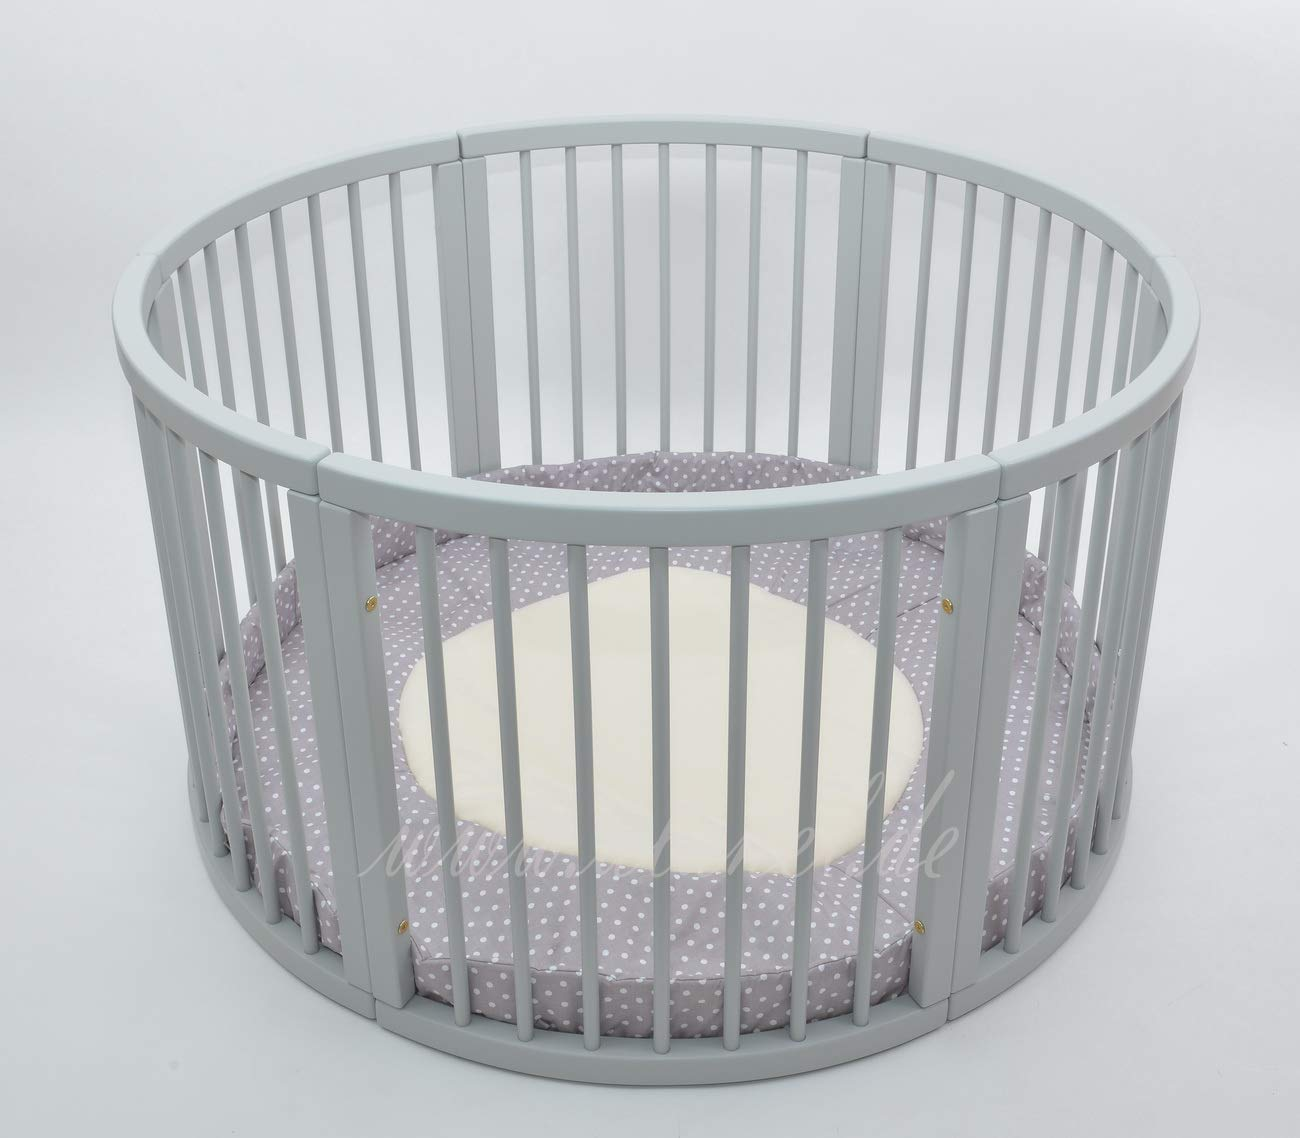 /Ø 120cm VERY LARGE WOODEN BABY PLAYPEN WITH PLAYMAT Stripes